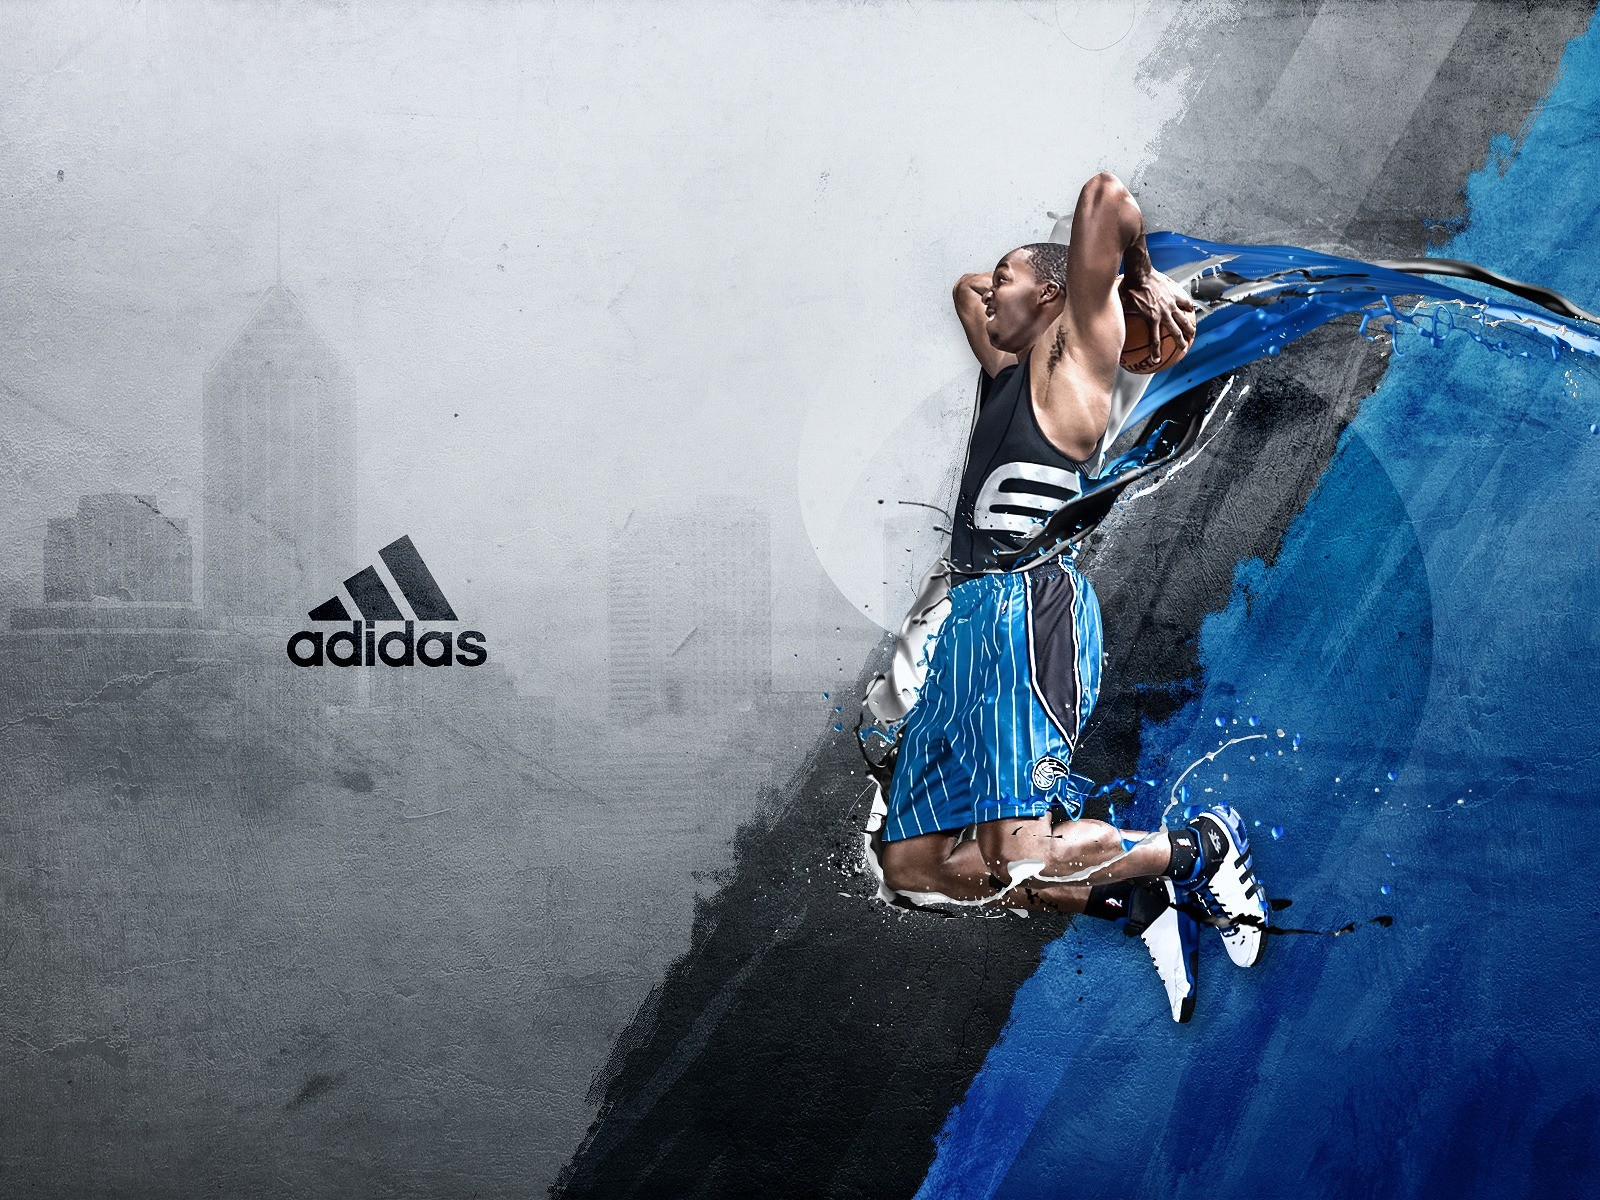 Basketball Wallpapers Tumblr The Art Mad Wallpapers 1600x1200